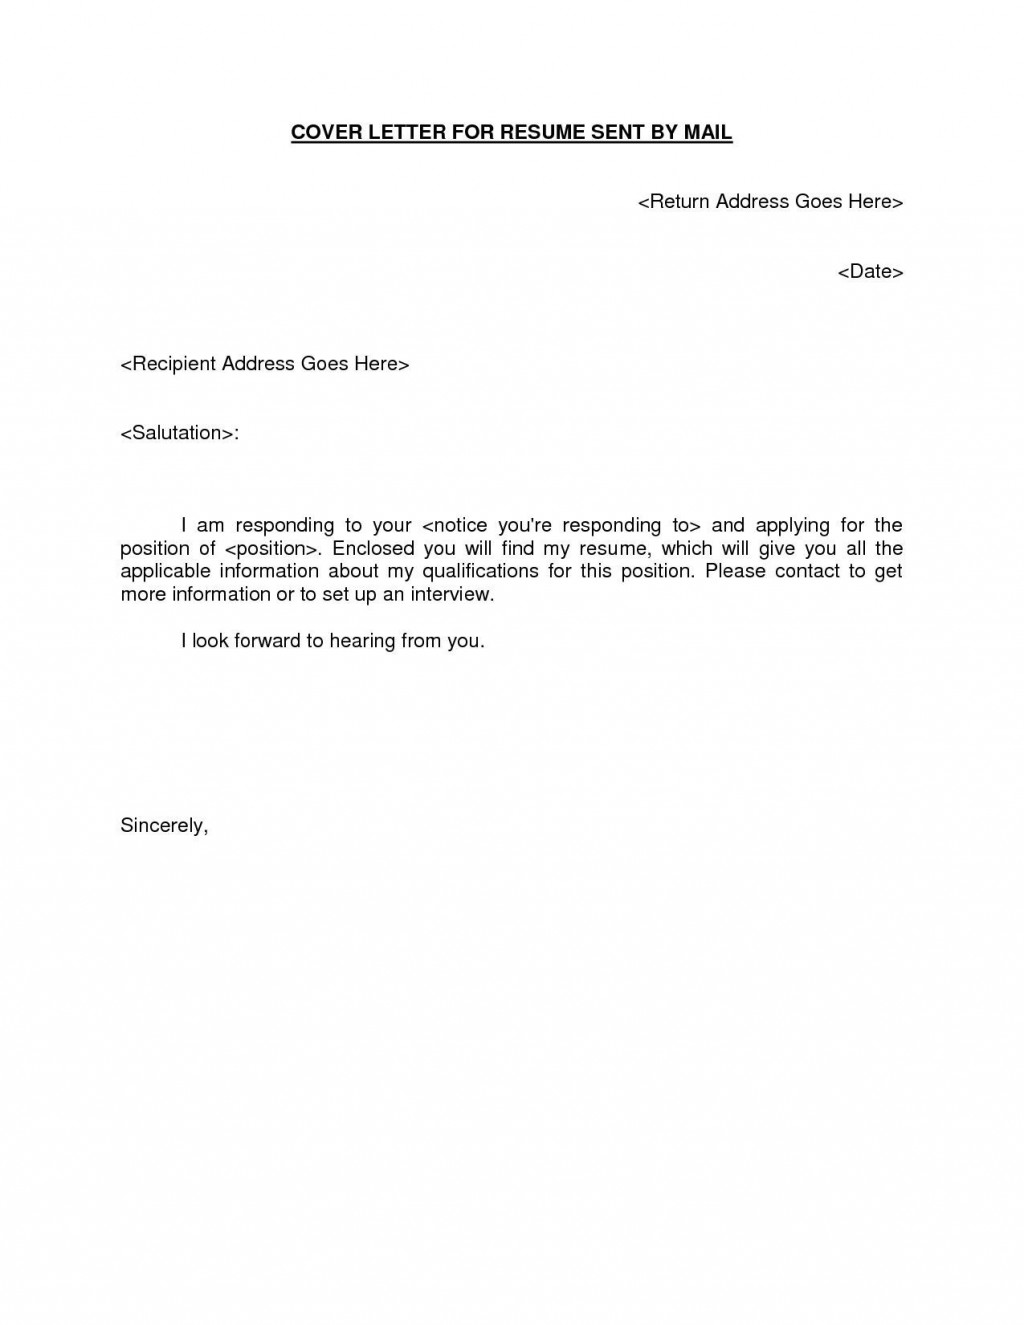 002 Formidable Email Cover Letter Example For Resume Idea  Sample Through AttachedLarge